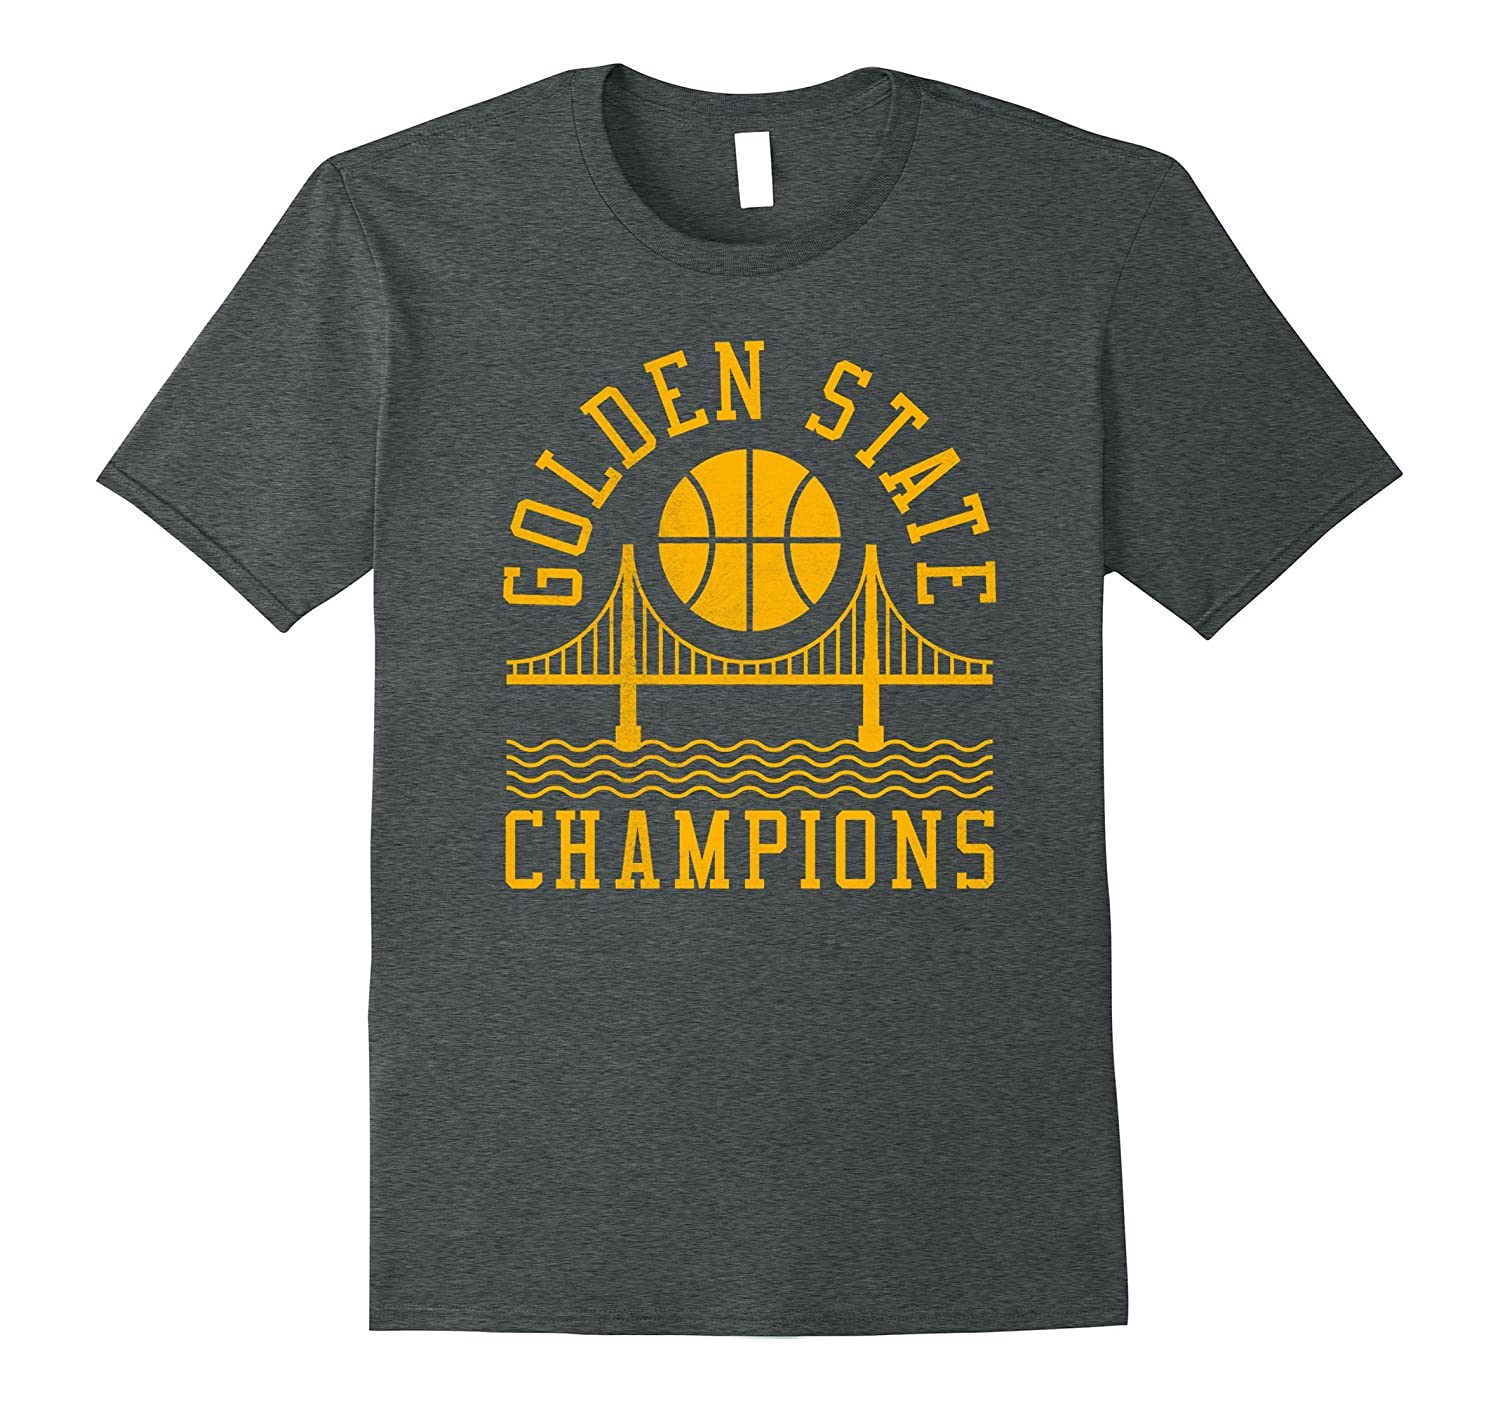 Golden State Champions Golden Gate Bridge 2017 shirt-Art